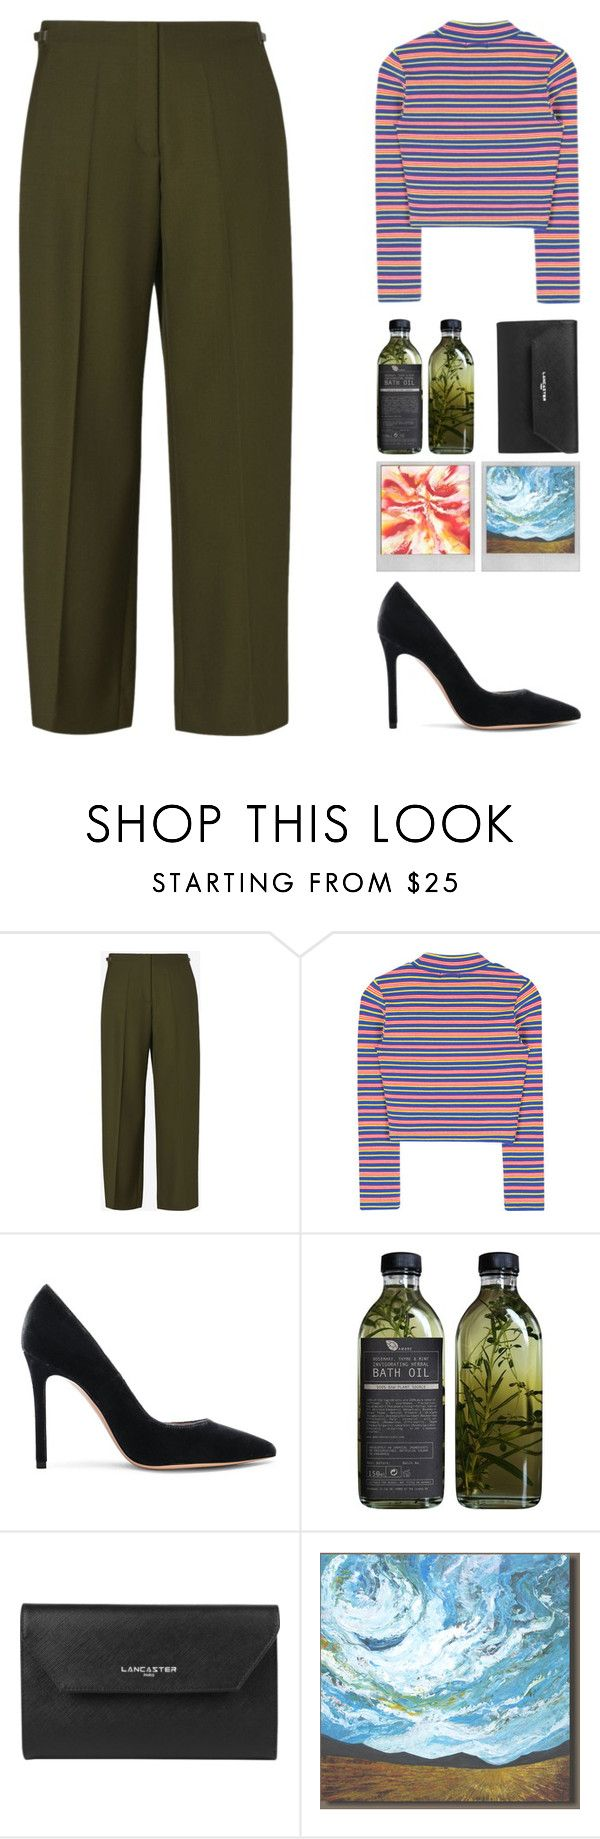 """reborn"" by senjiichan on Polyvore featuring Maison Margiela, Gianvito Rossi, AMBRE, Lancaster, Polaroid and John-Richard"